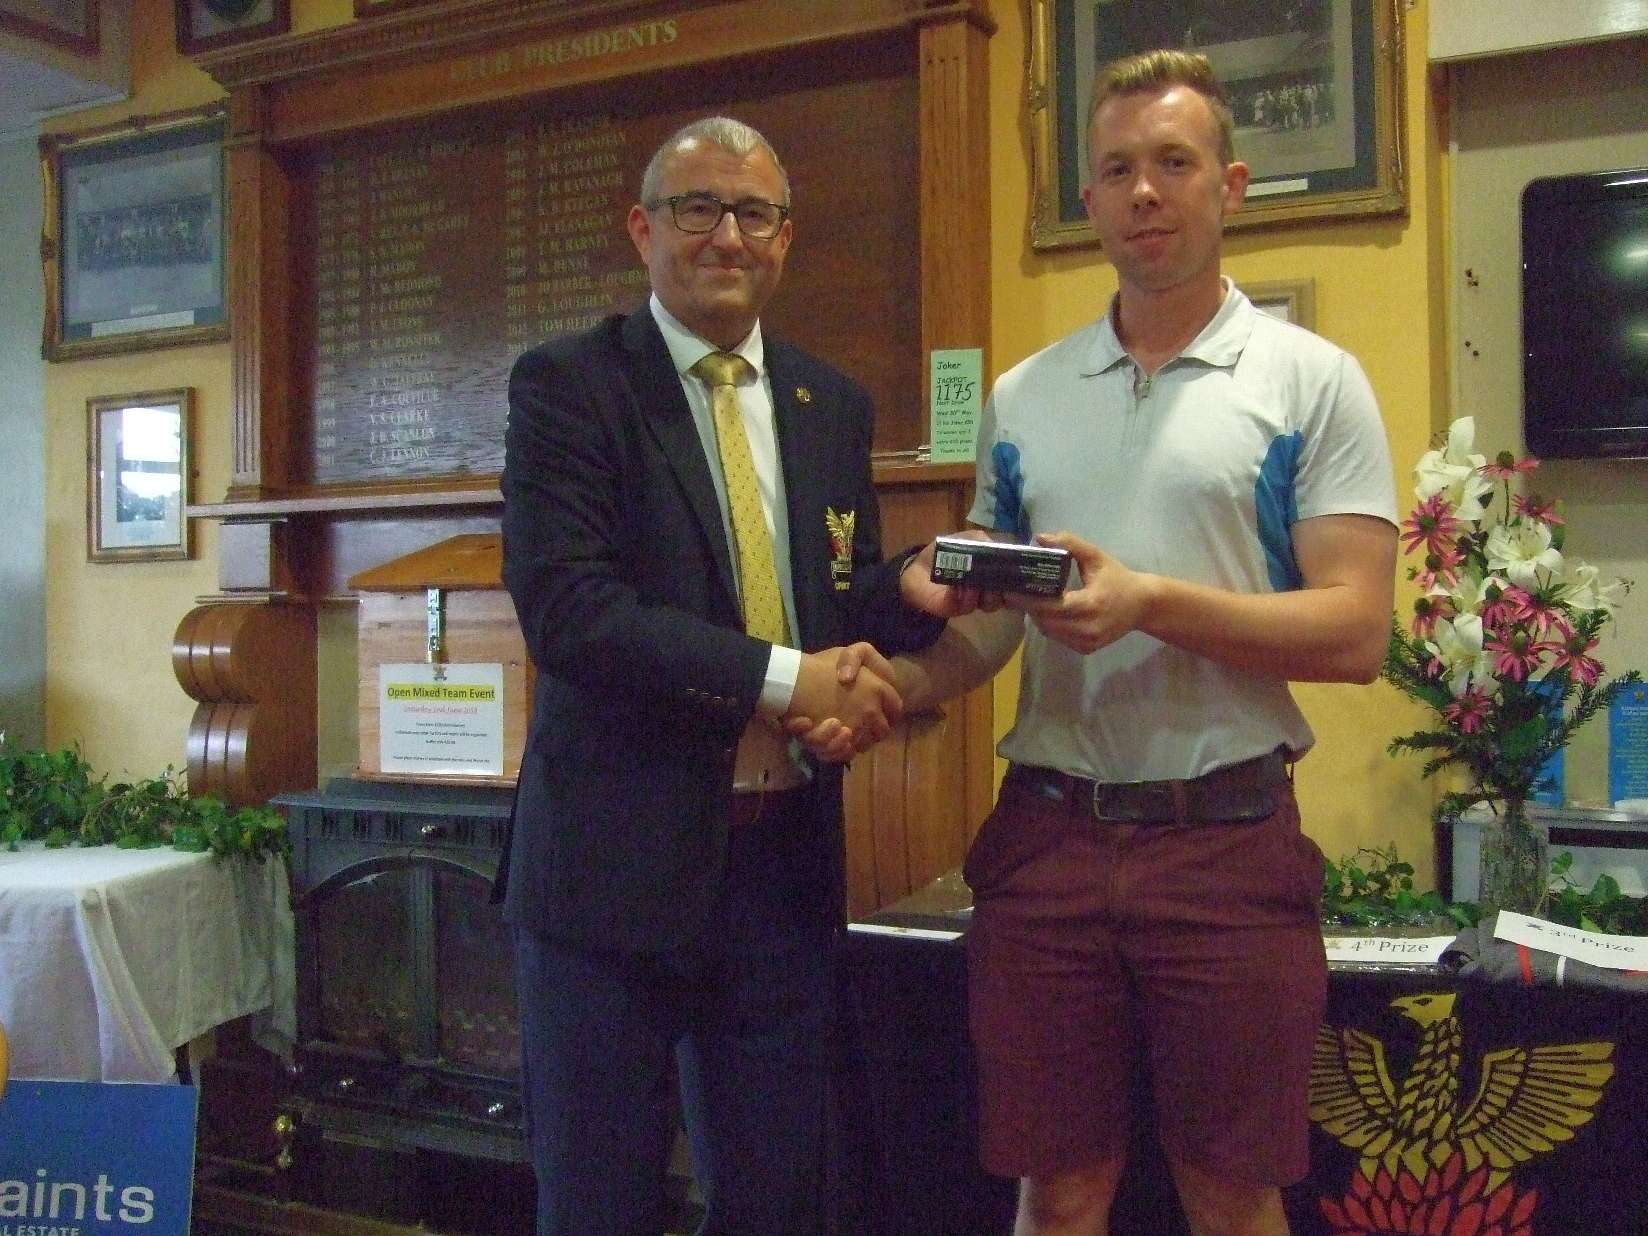 David Brazil winner of the gross in Bernard Quigley's prize with Captain Brian Gunning